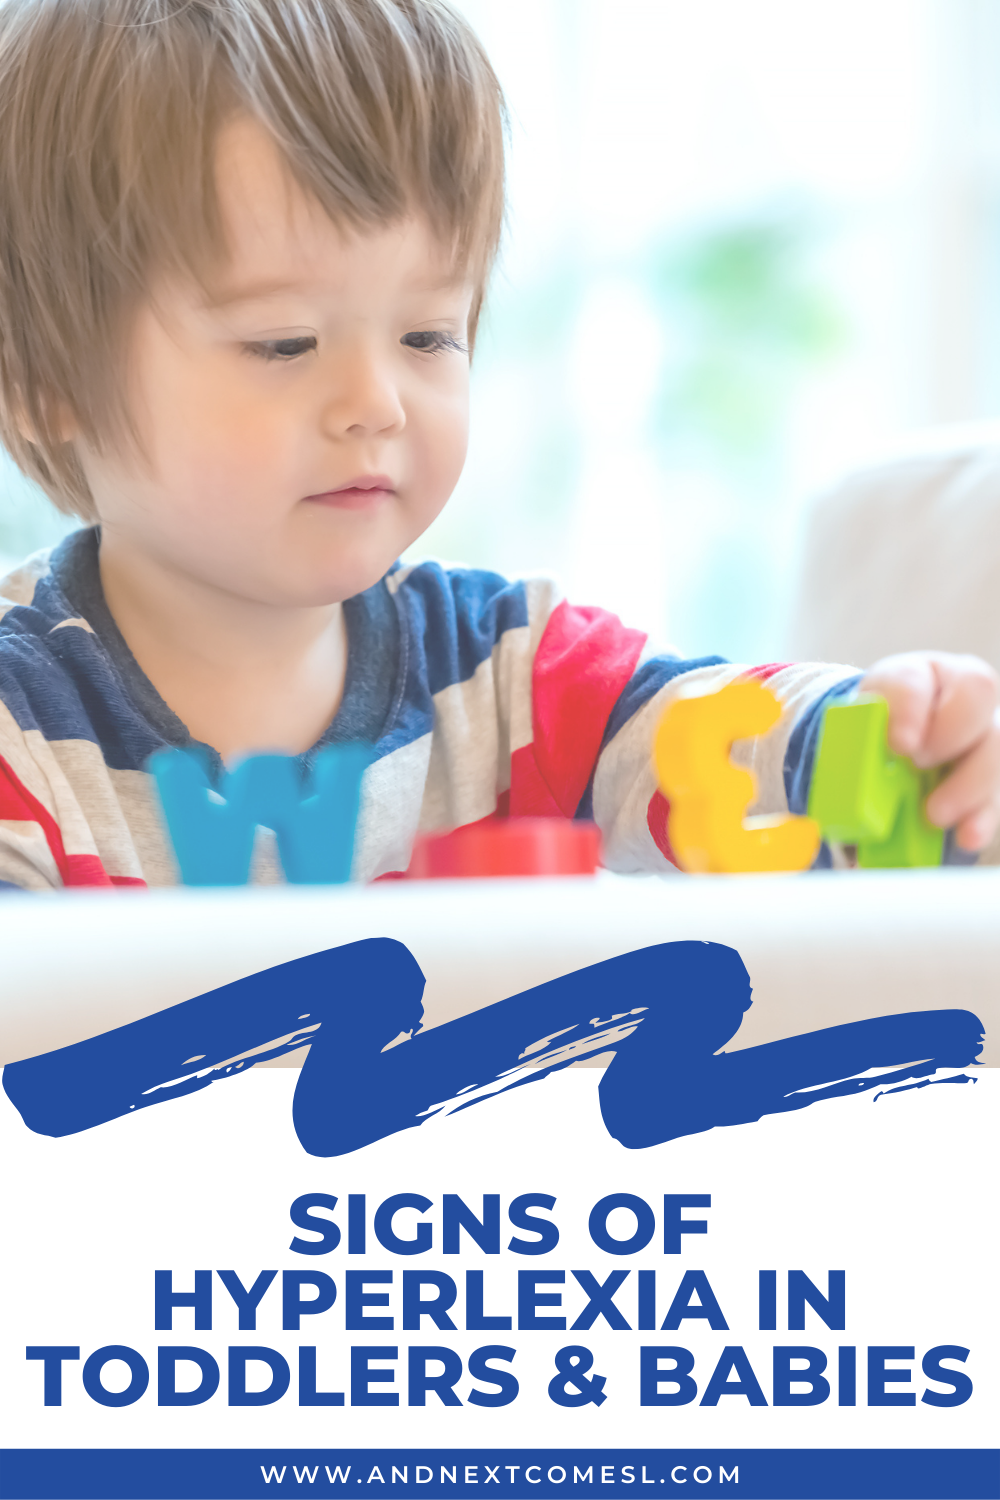 Hyperlexia in toddlers & babies: early signs you might notice